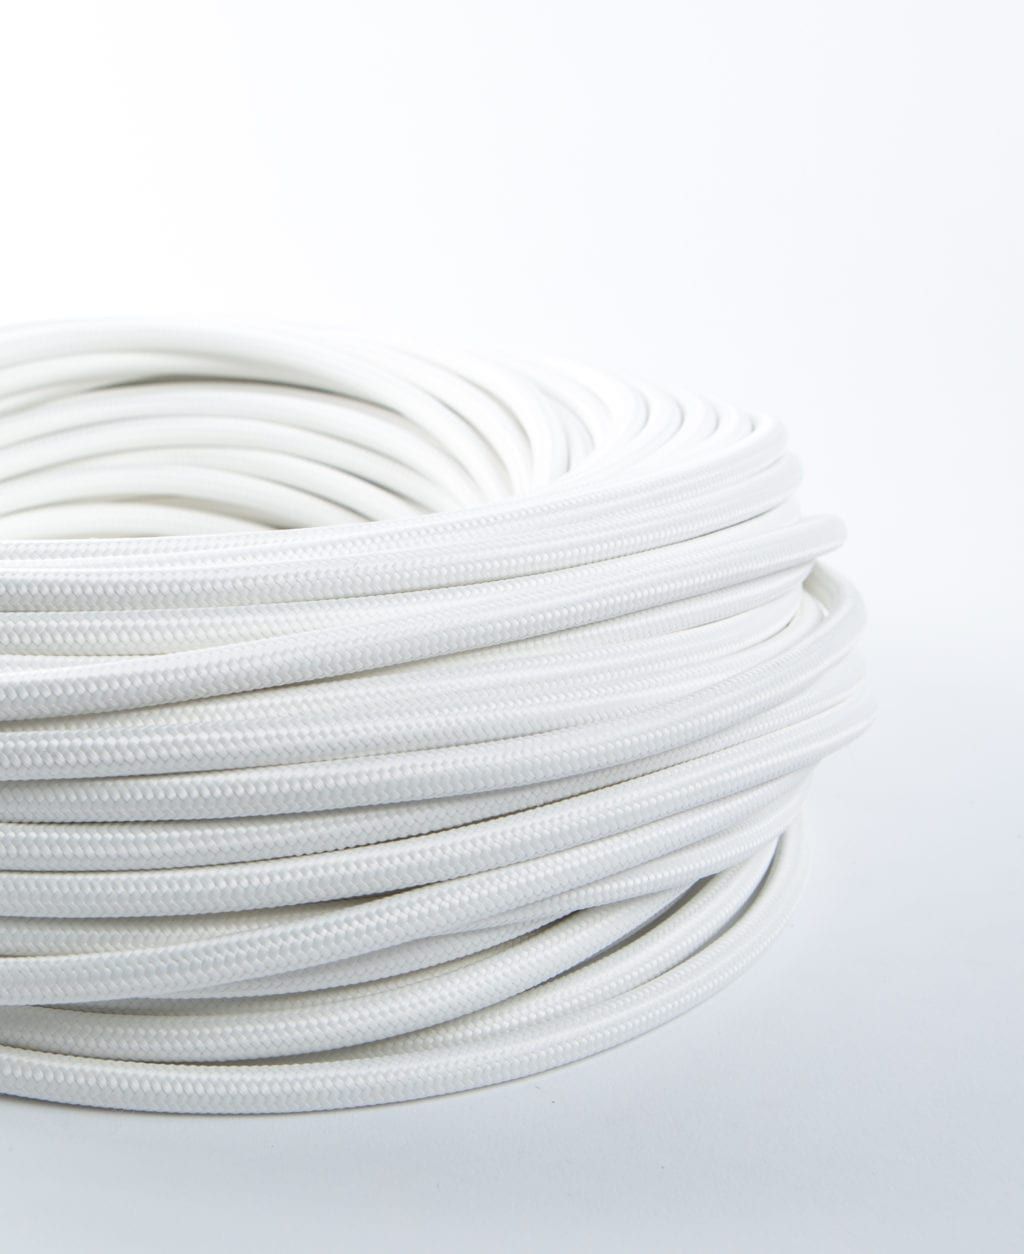 closeup of white fabric cable coil against white background